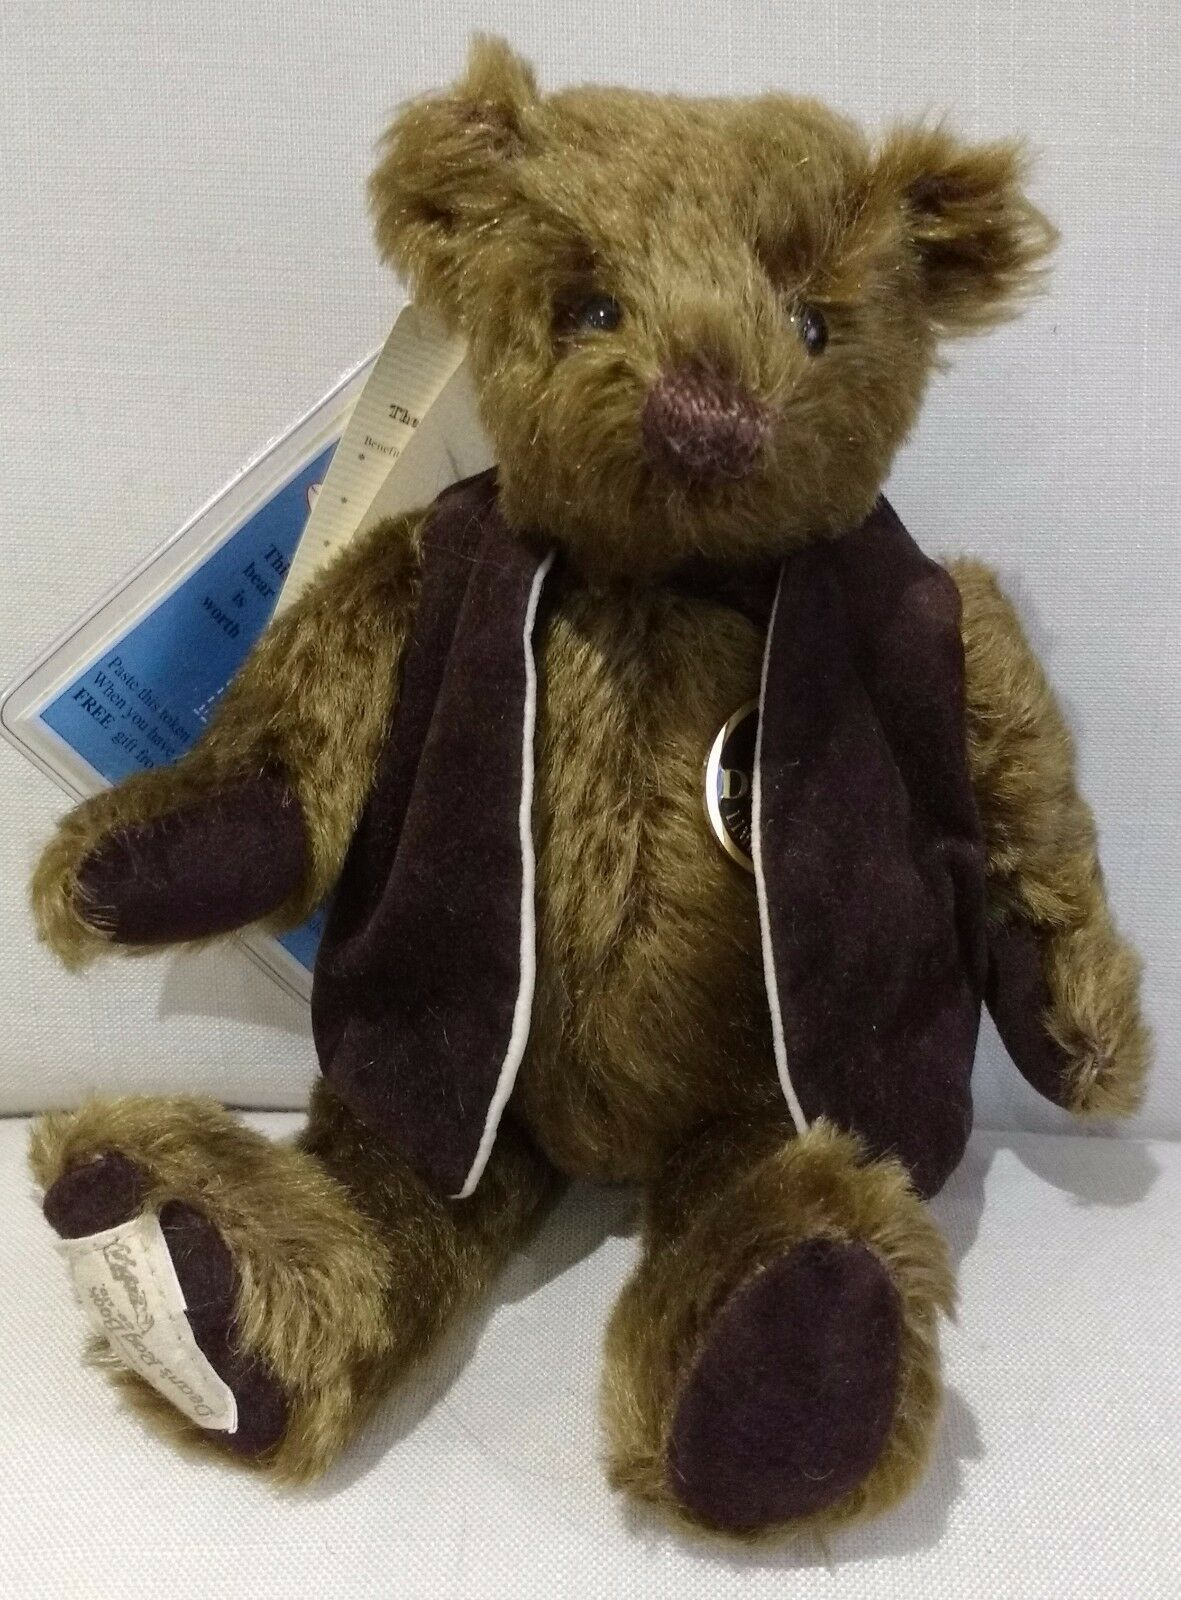 DEANS MOHAIR TEDDY BEAR - - - GRAVY braunING - NO 57 OF 500 - NEW WITH TAGS d8714a